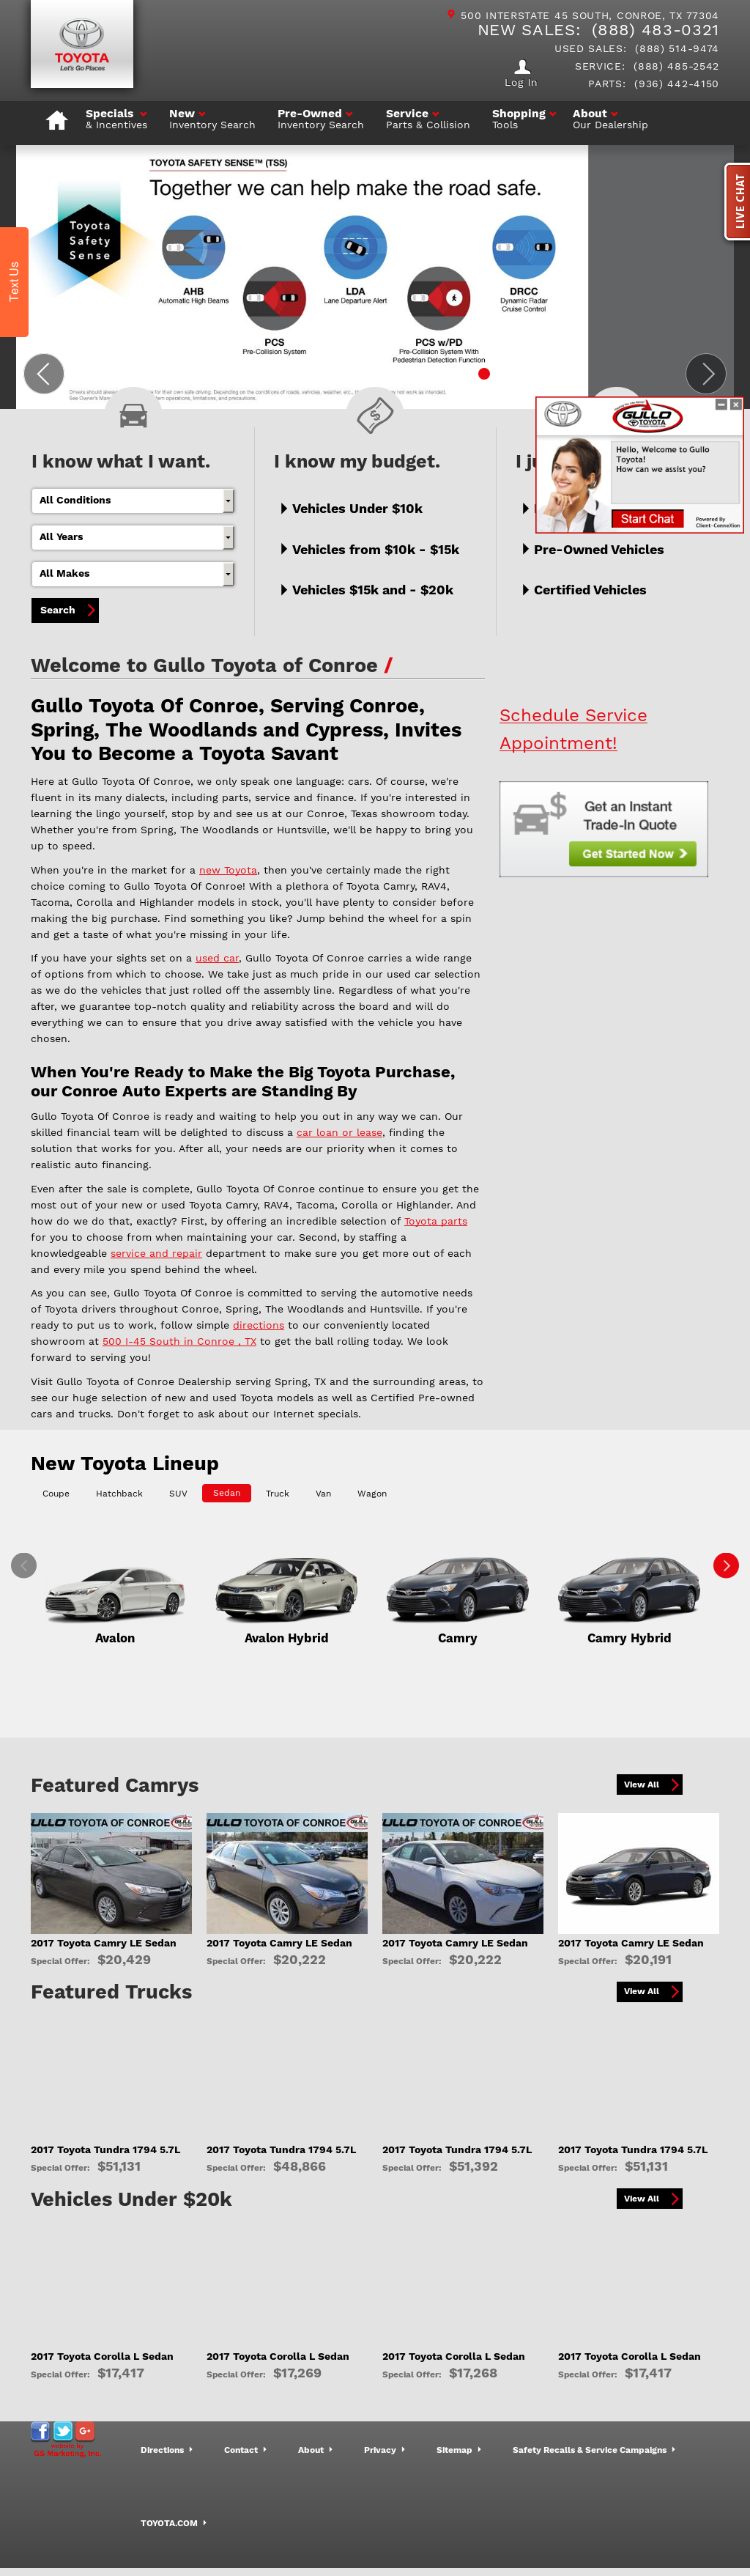 Gullo Toyota Conroe Website History